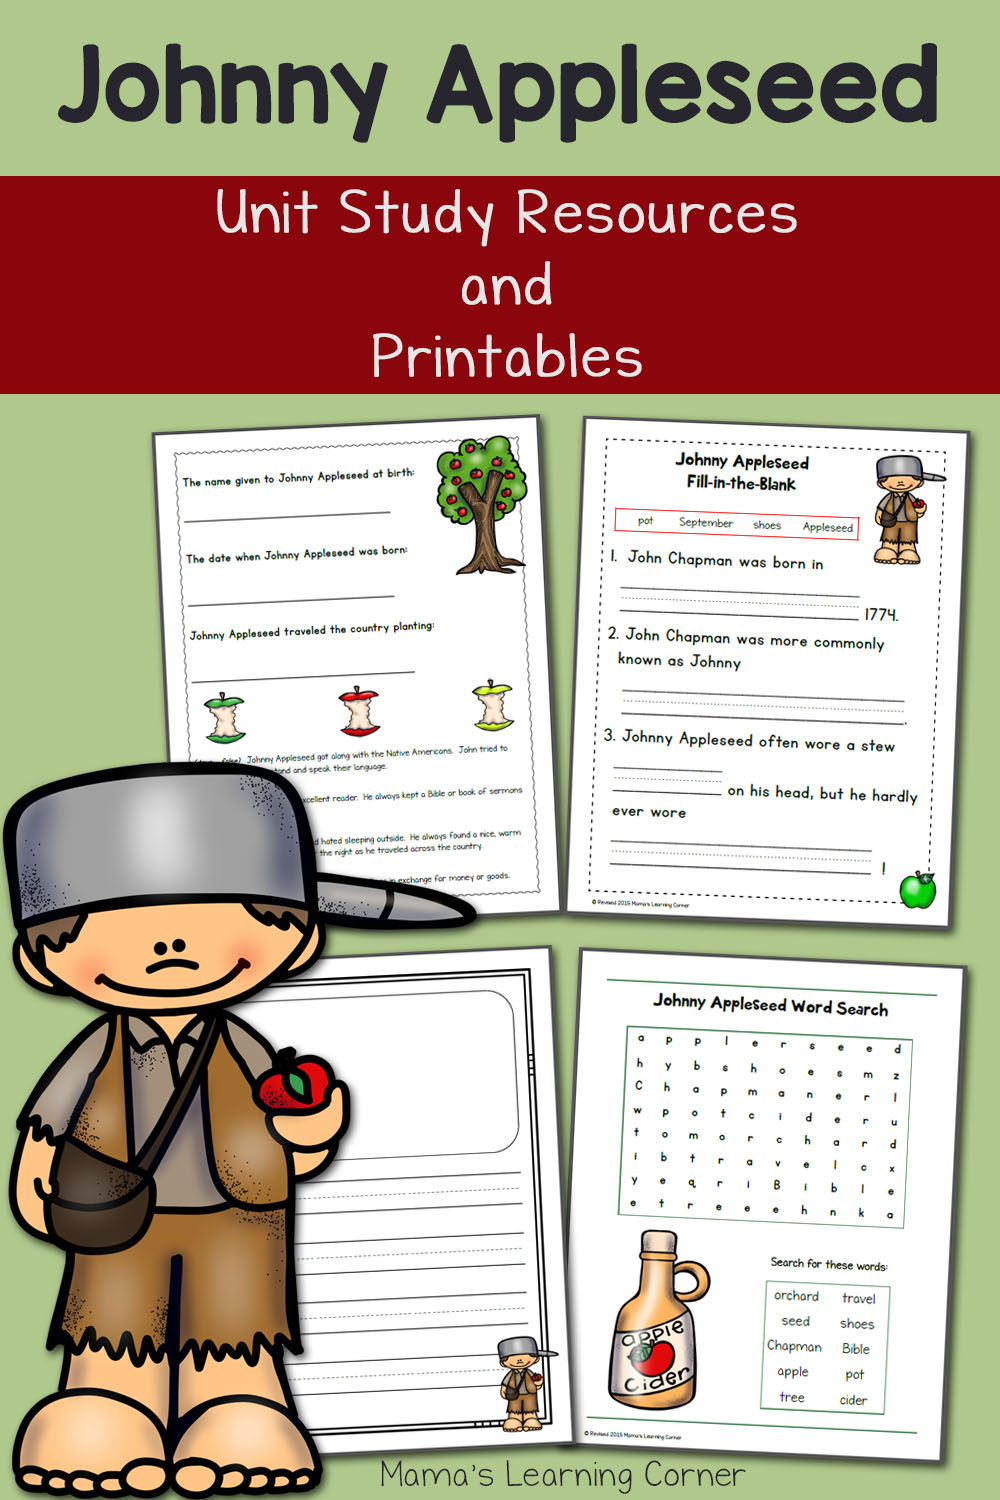 hight resolution of Johnny Appleseed Printables and Unit Study Resources - Mamas Learning Corner